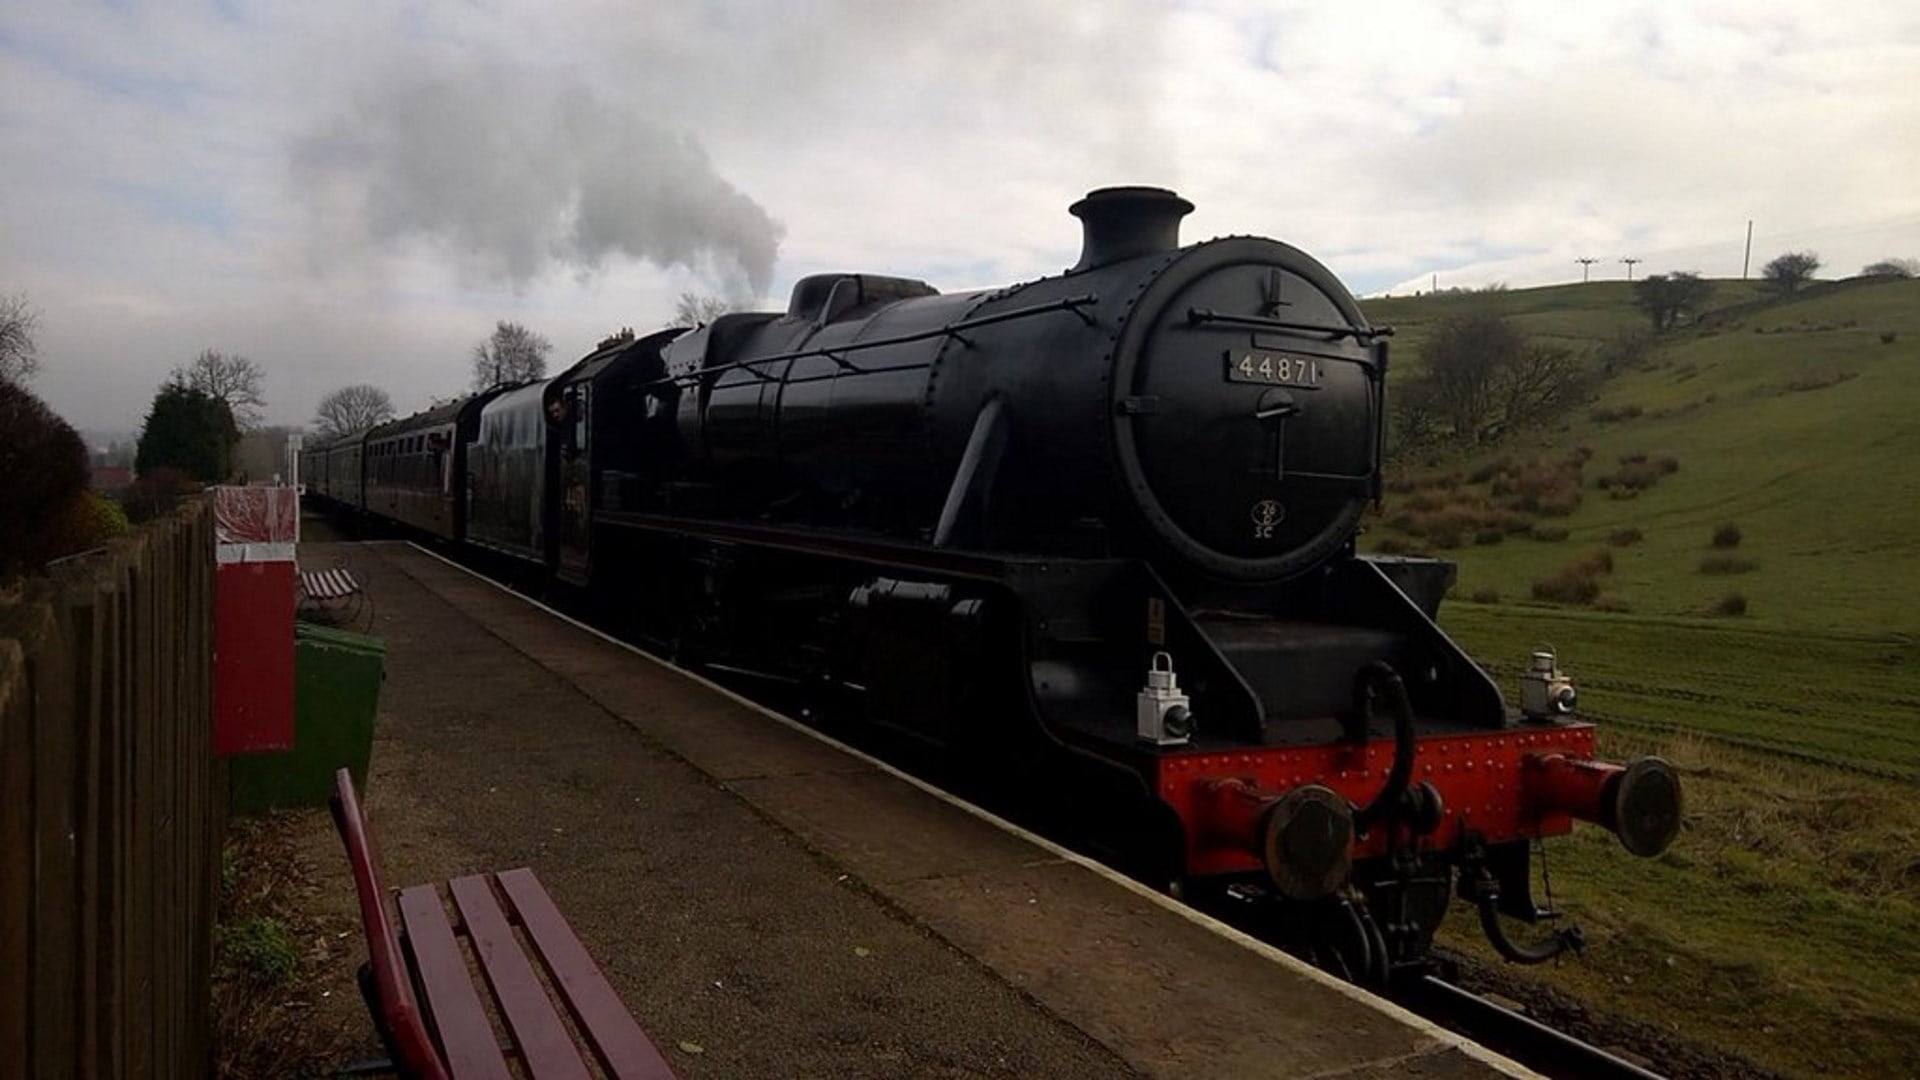 No. 44871 at Irwell Vale